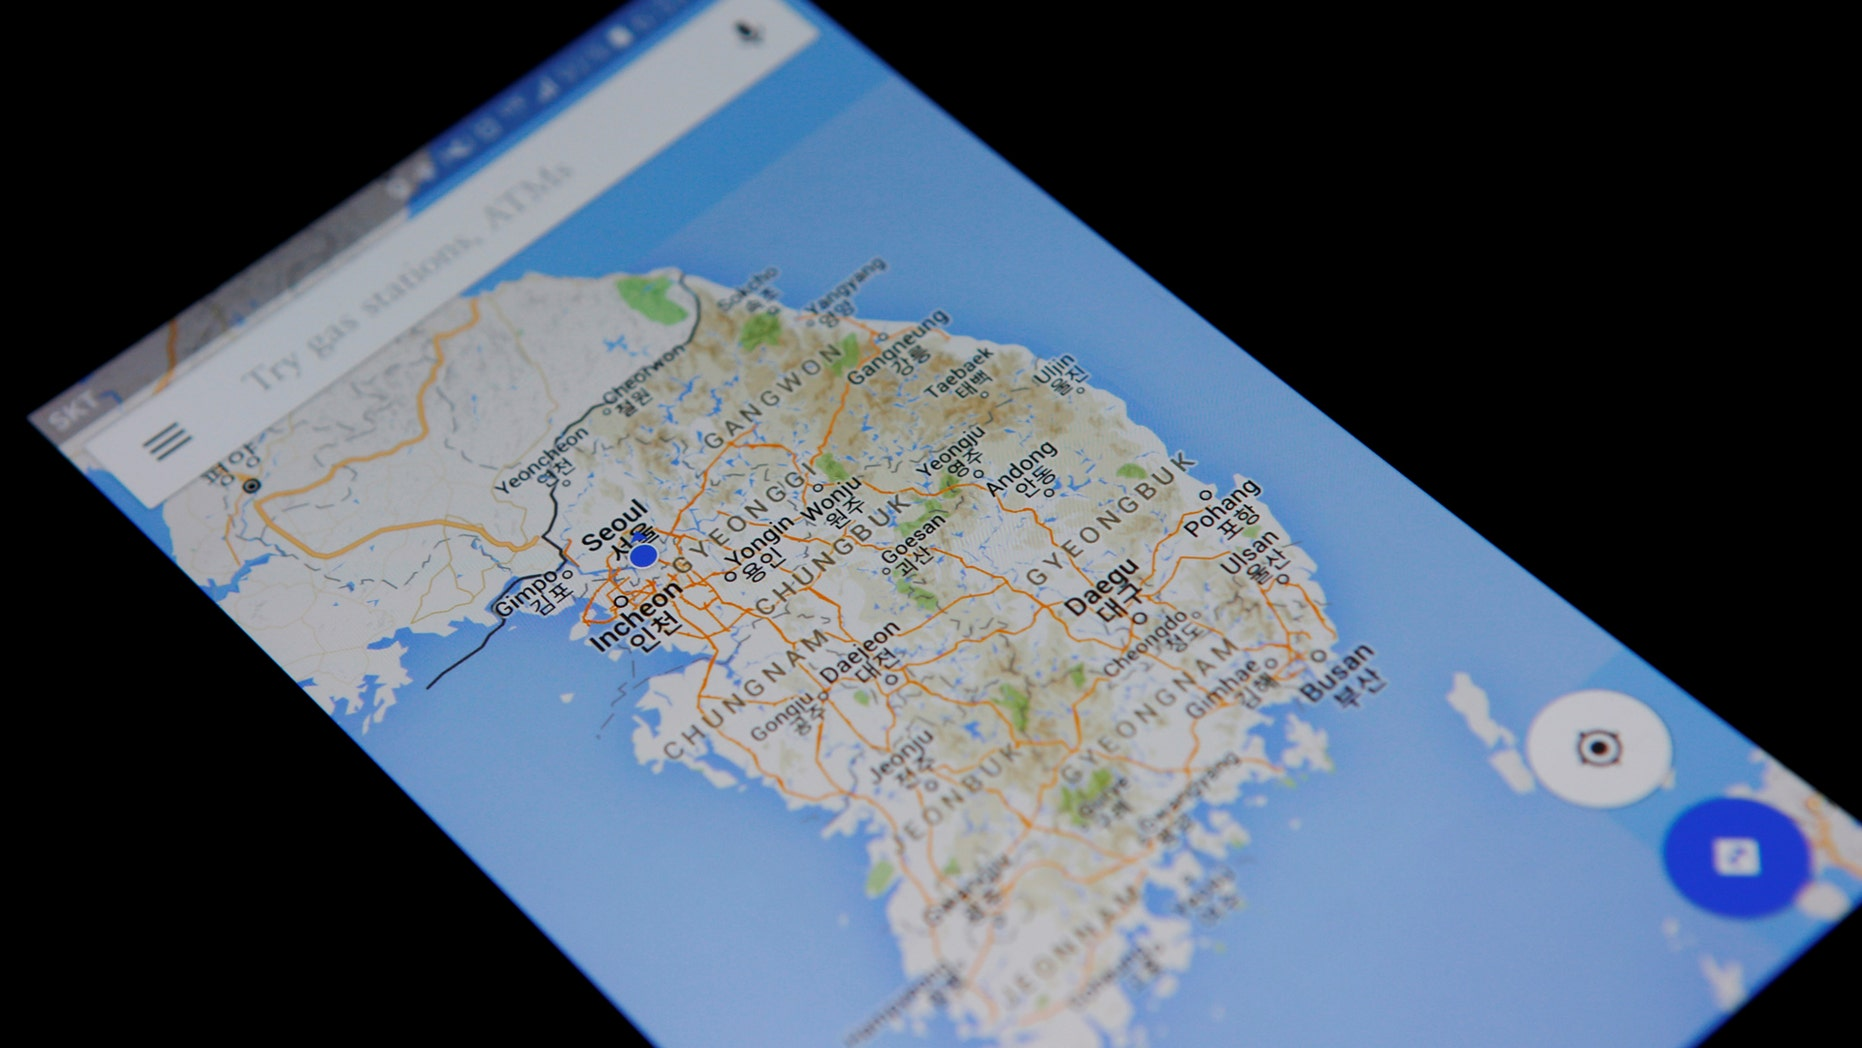 File photo: Google Maps application is displayed on a smartphone in Seoul, South Korea, in this photo illustration on August 24, 2016. REUTERS/Kim Hong-Ji TPX IMAGES OF